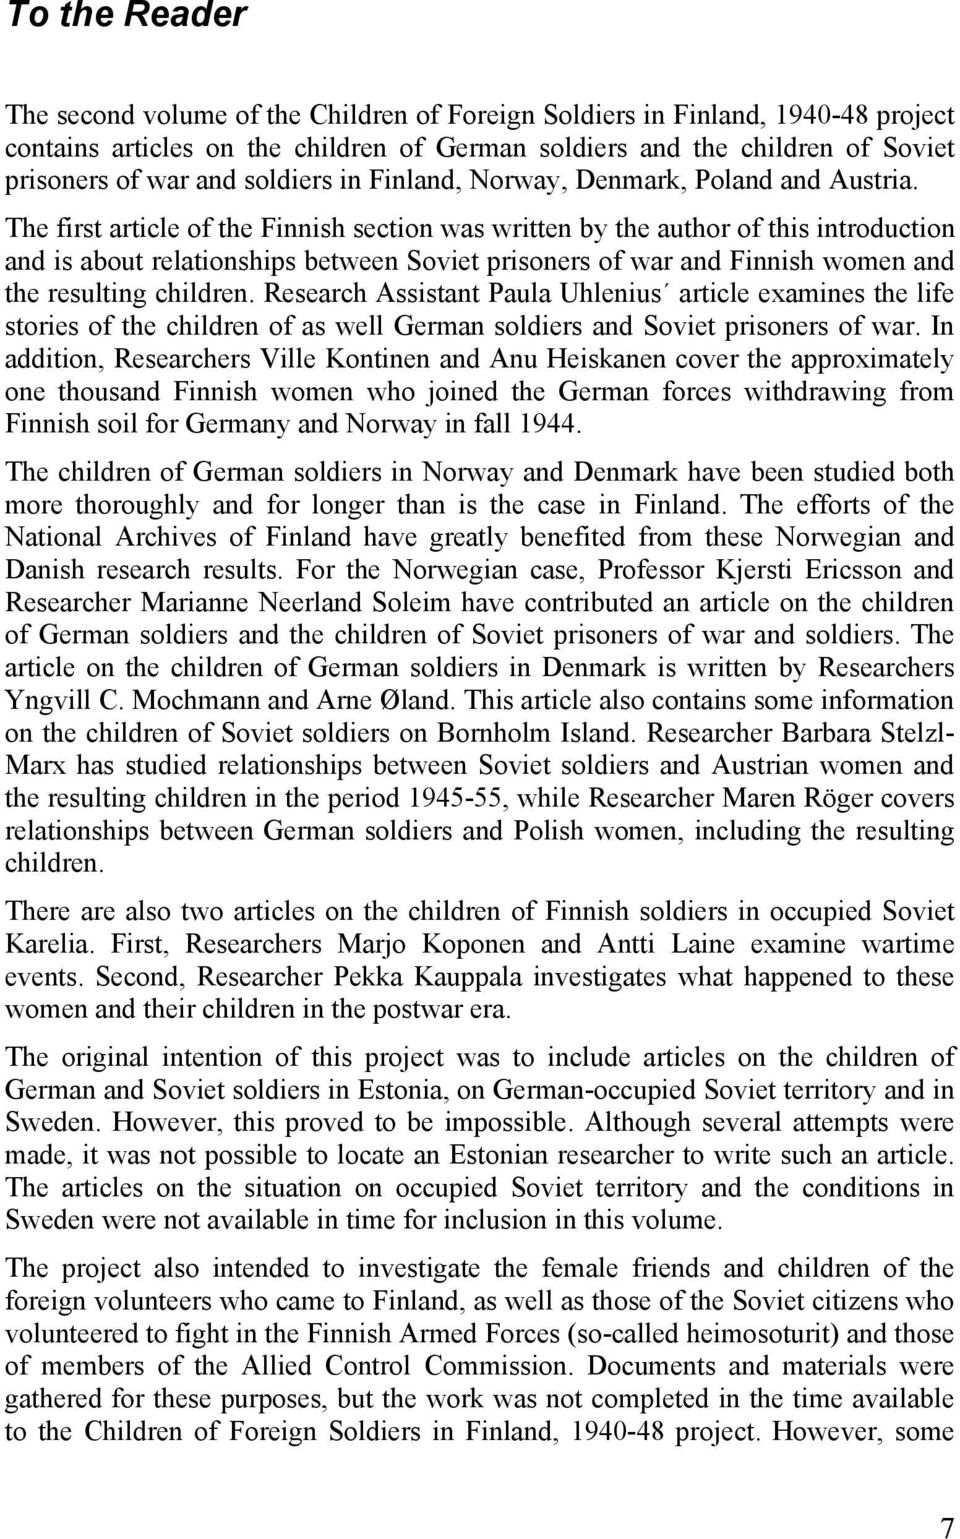 The first article of the Finnish section was written by the author of this introduction and is about relationships between Soviet prisoners of war and Finnish women and the resulting children.